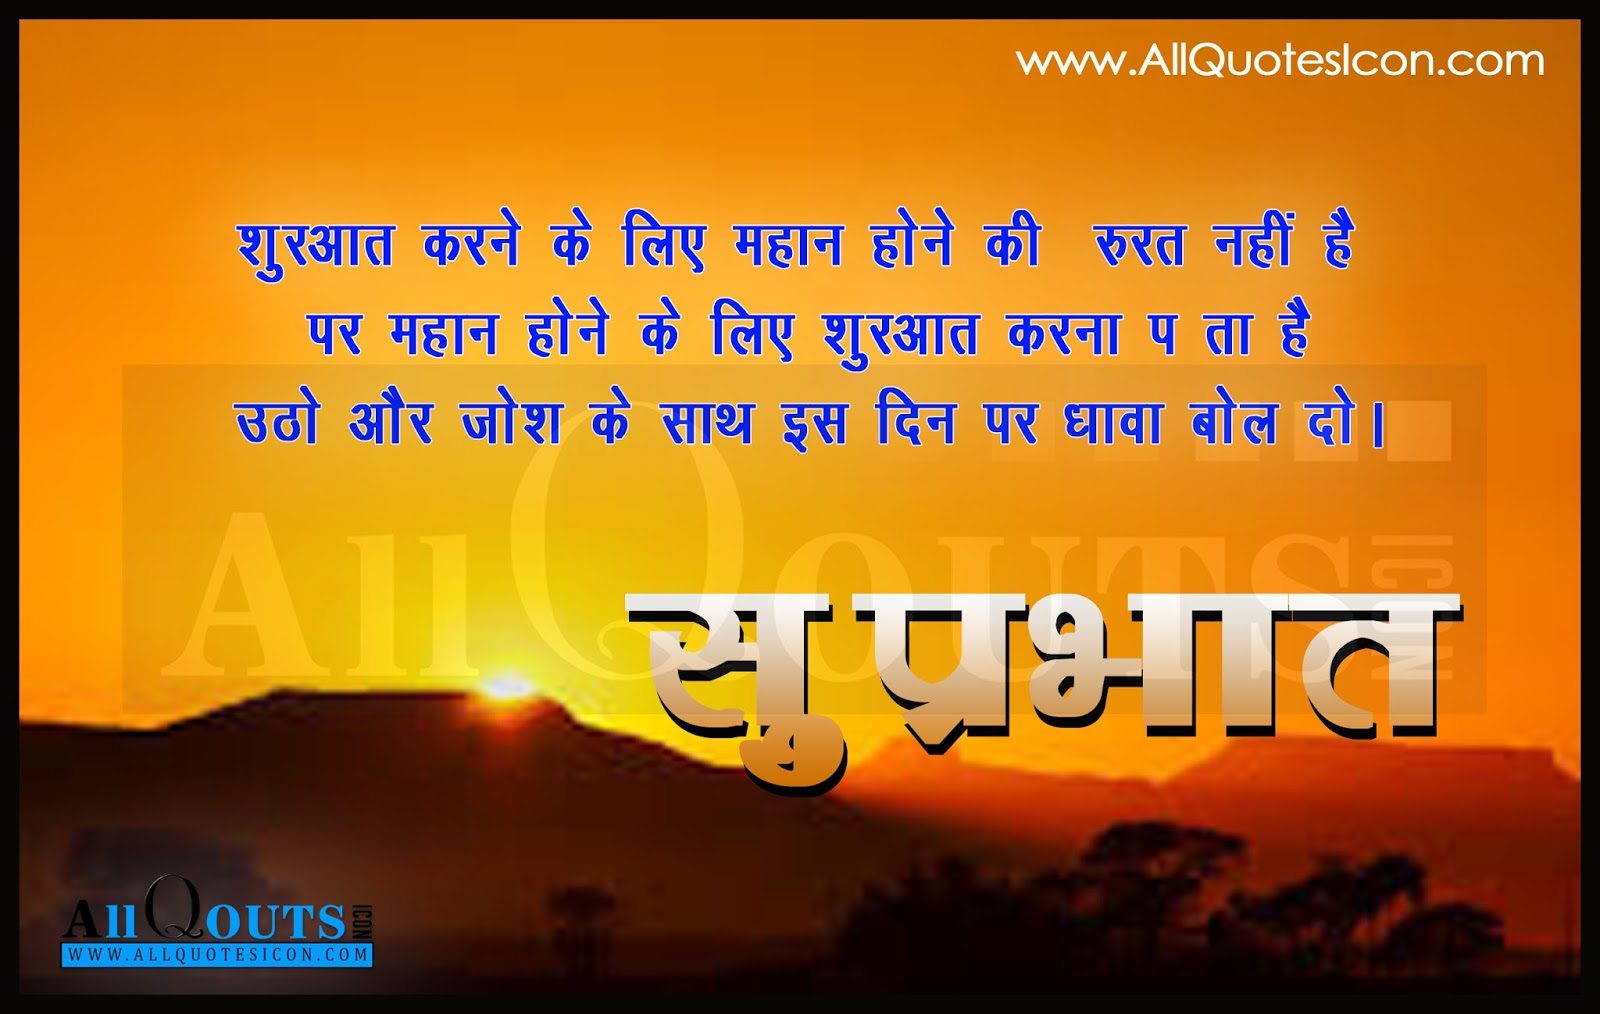 Good morning wishes in hindi hd images nemetasfgegabeltfo good morning hindi quotes images pictures wallpapers photos m4hsunfo